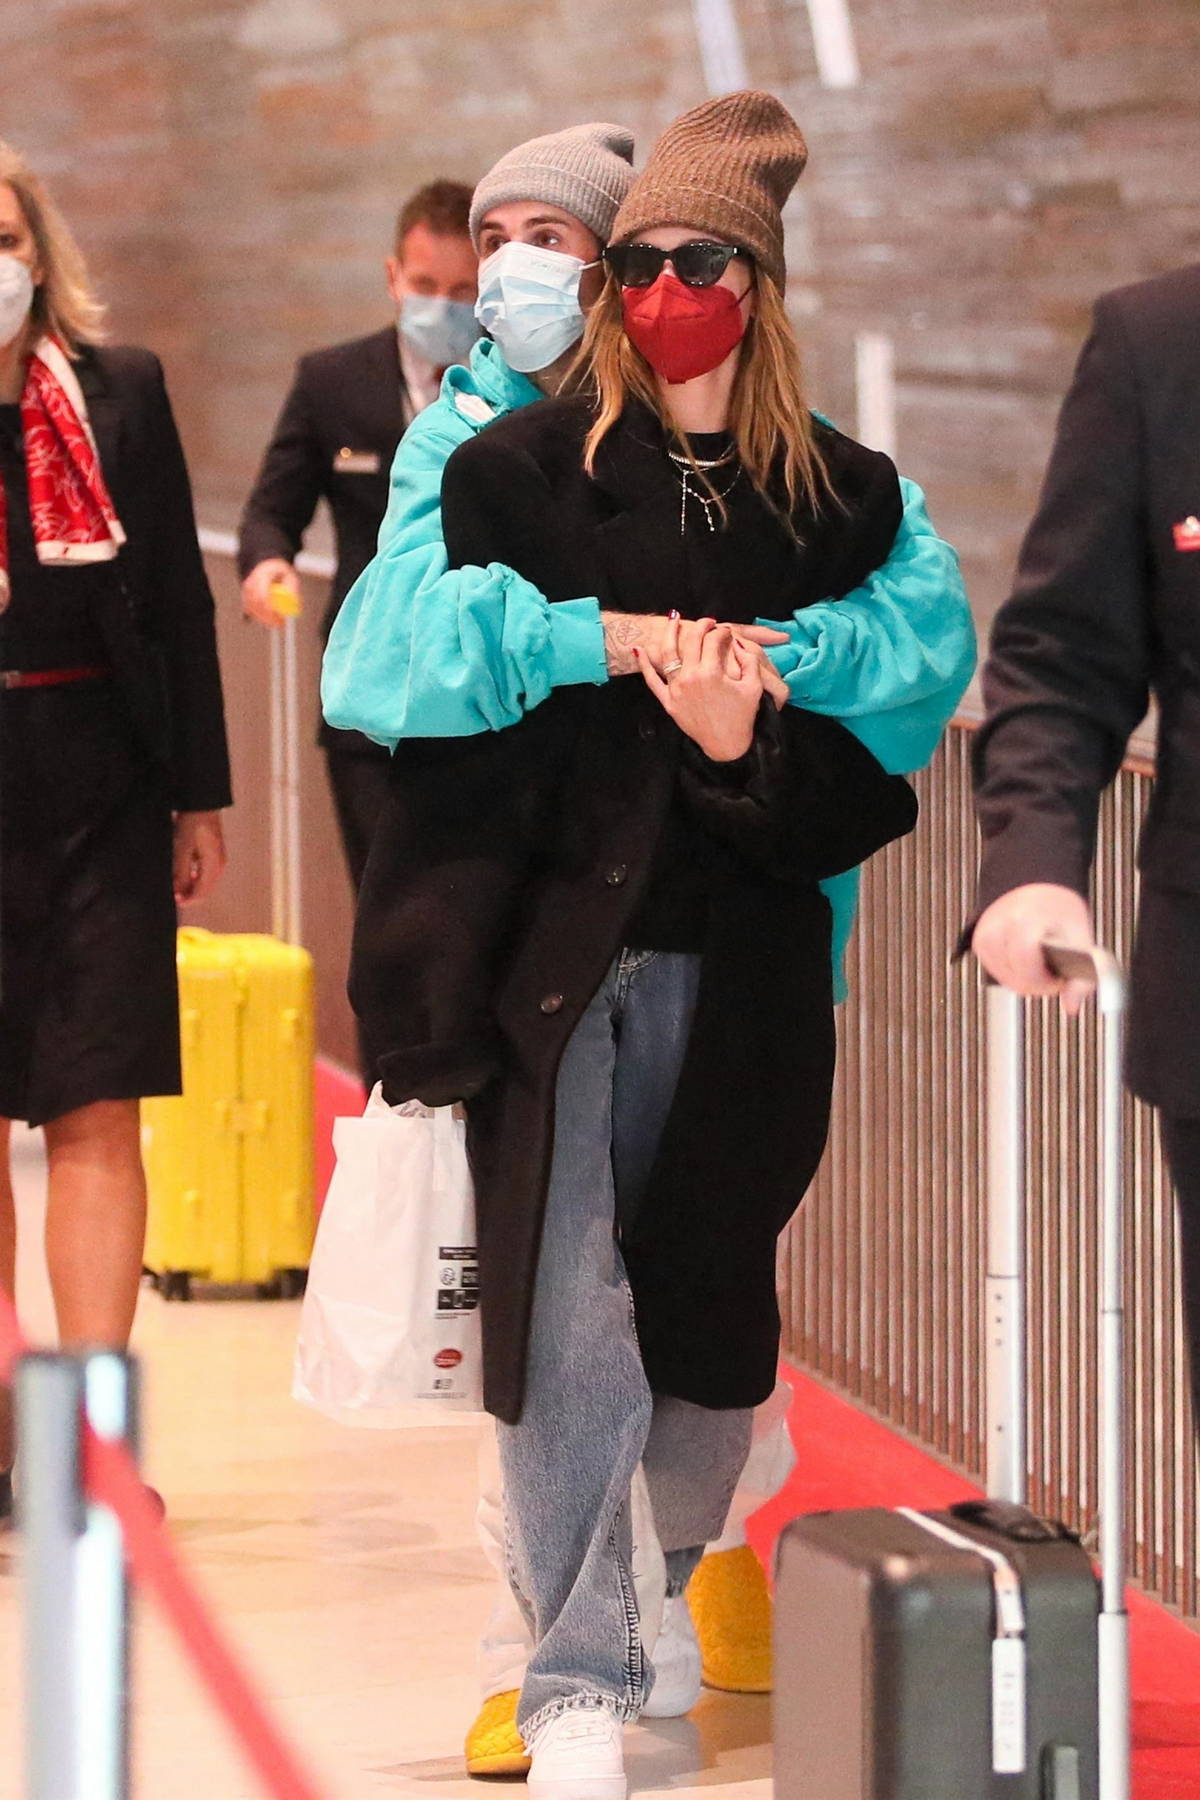 Hailey Bieber and Justin Bieber pack on some PDA as they arrive for a flight out of Charles de Gaulle airport in Paris, France